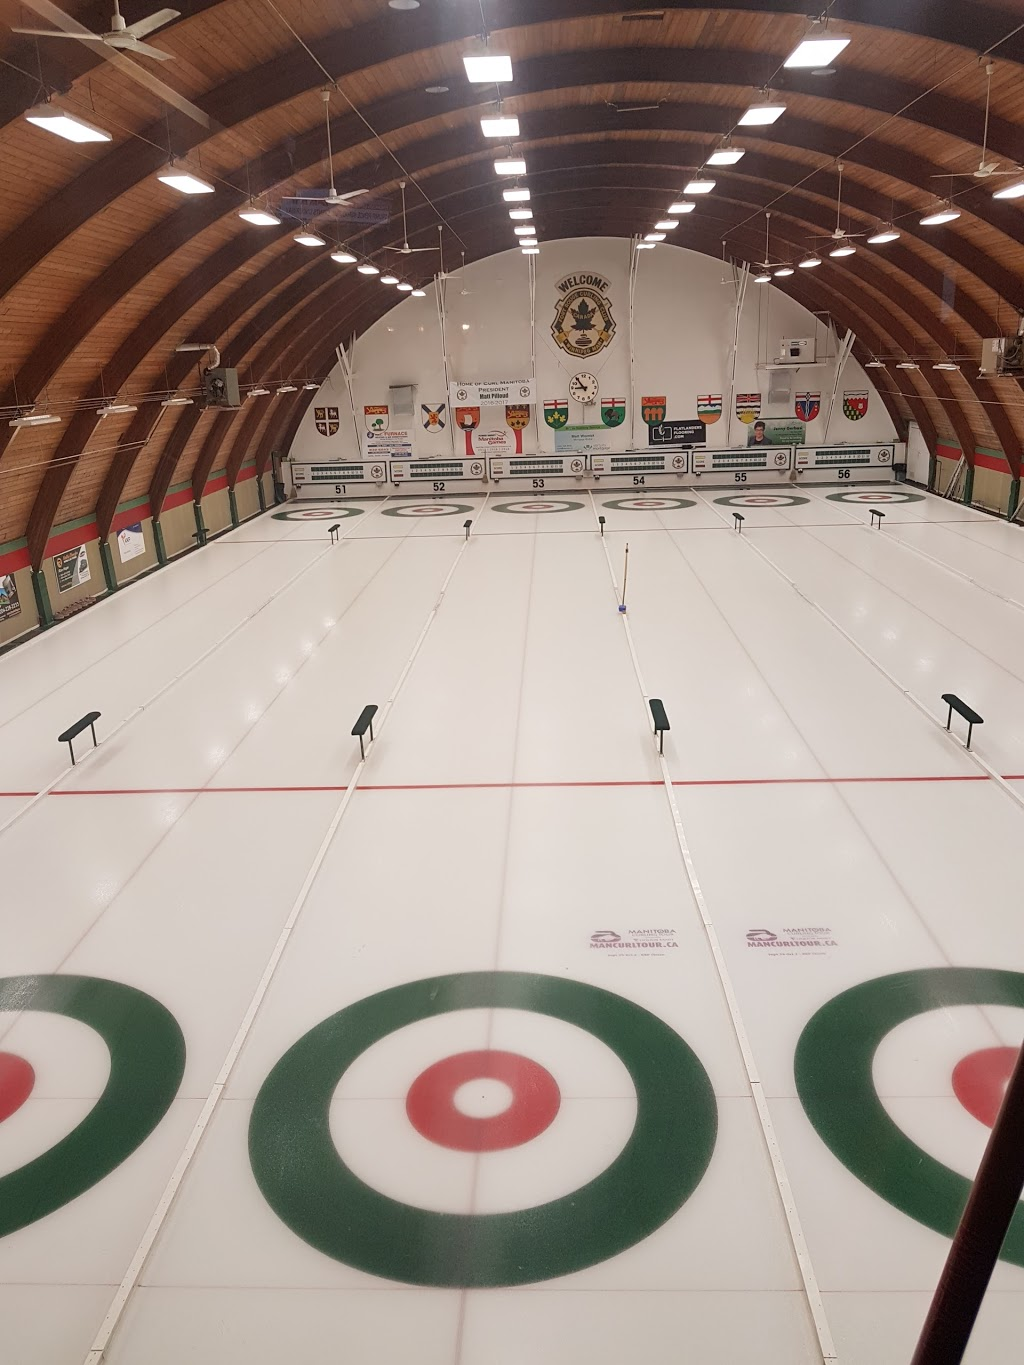 Fort Rouge Curling Club | stadium | 750 Daly St S, Winnipeg, MB R3L 2N2, Canada | 2044750888 OR +1 204-475-0888